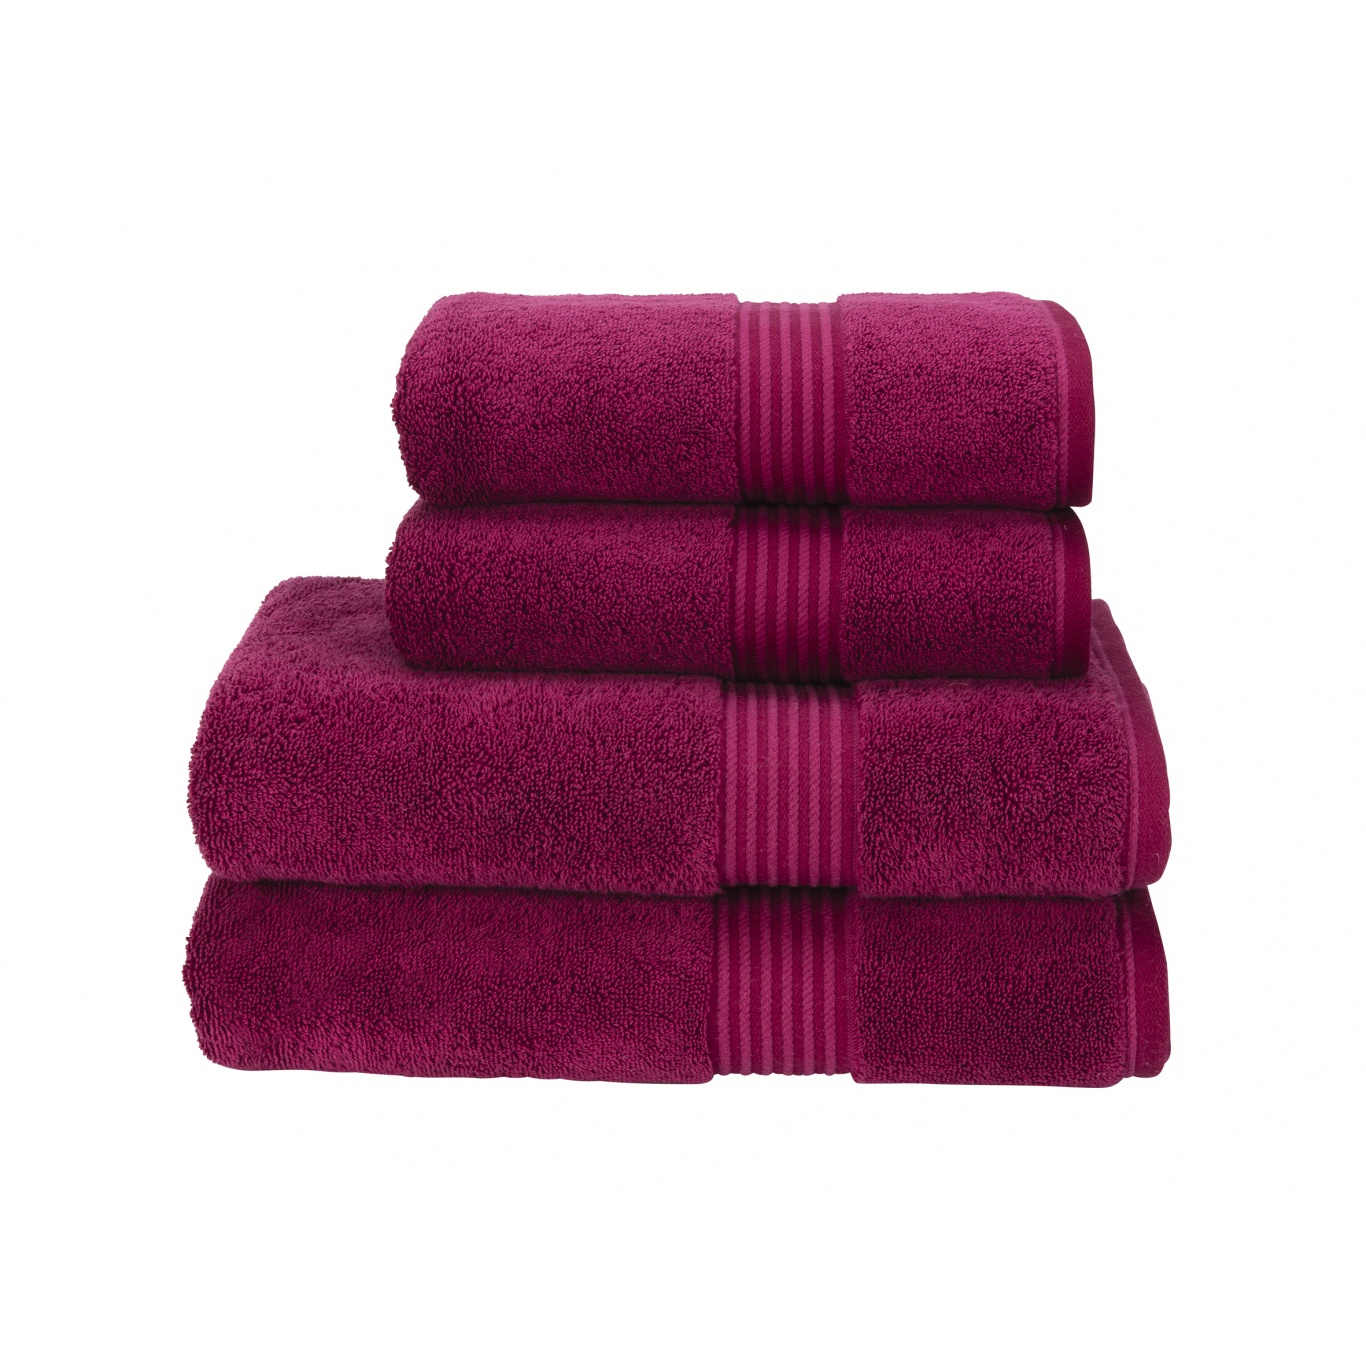 Image of Christy Supreme Supima Hygro Raspberry Towels